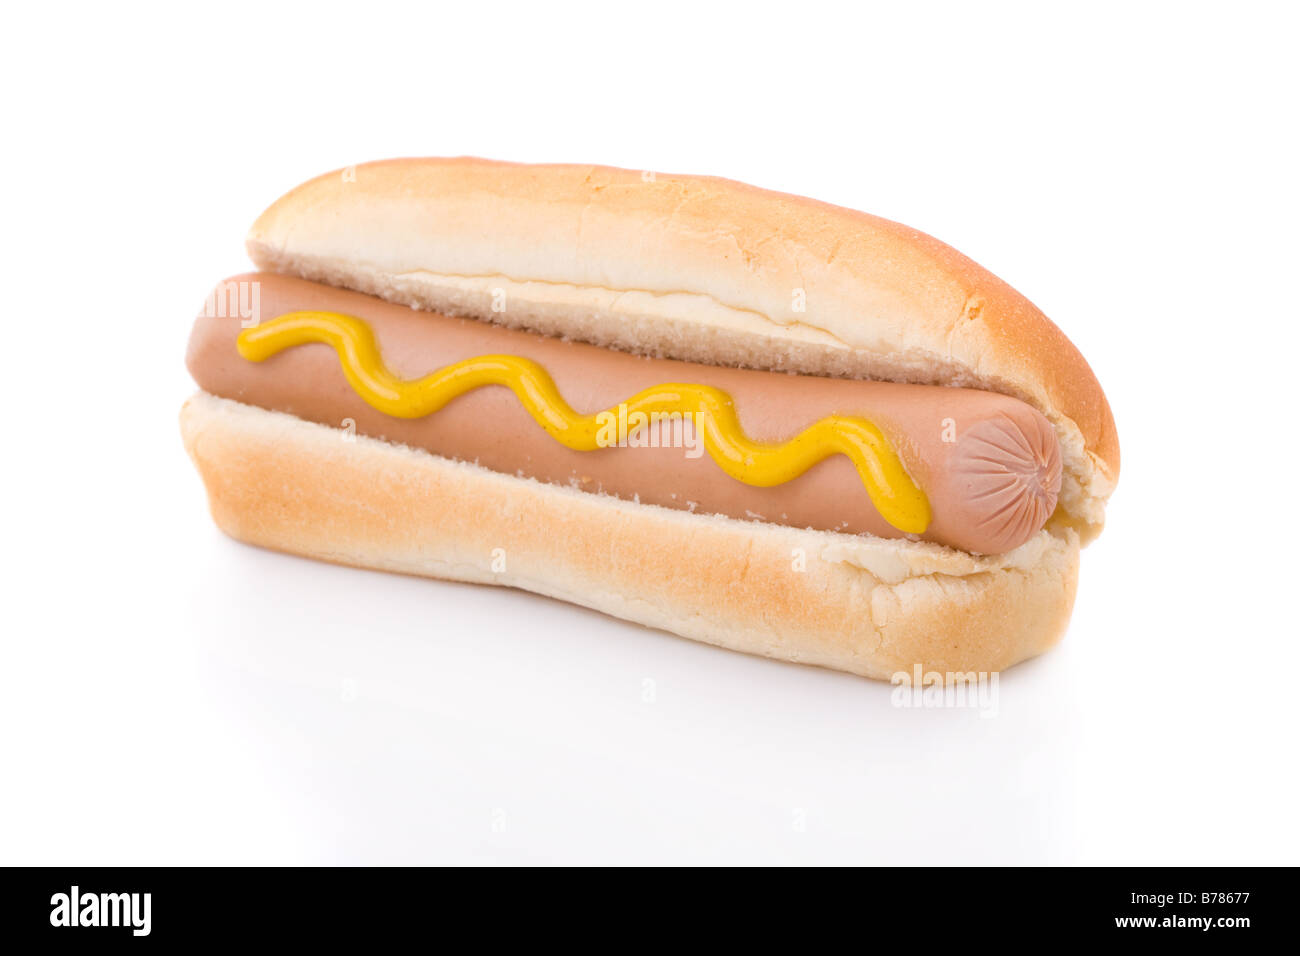 Mustard hotdog isolated on a white background - Stock Image